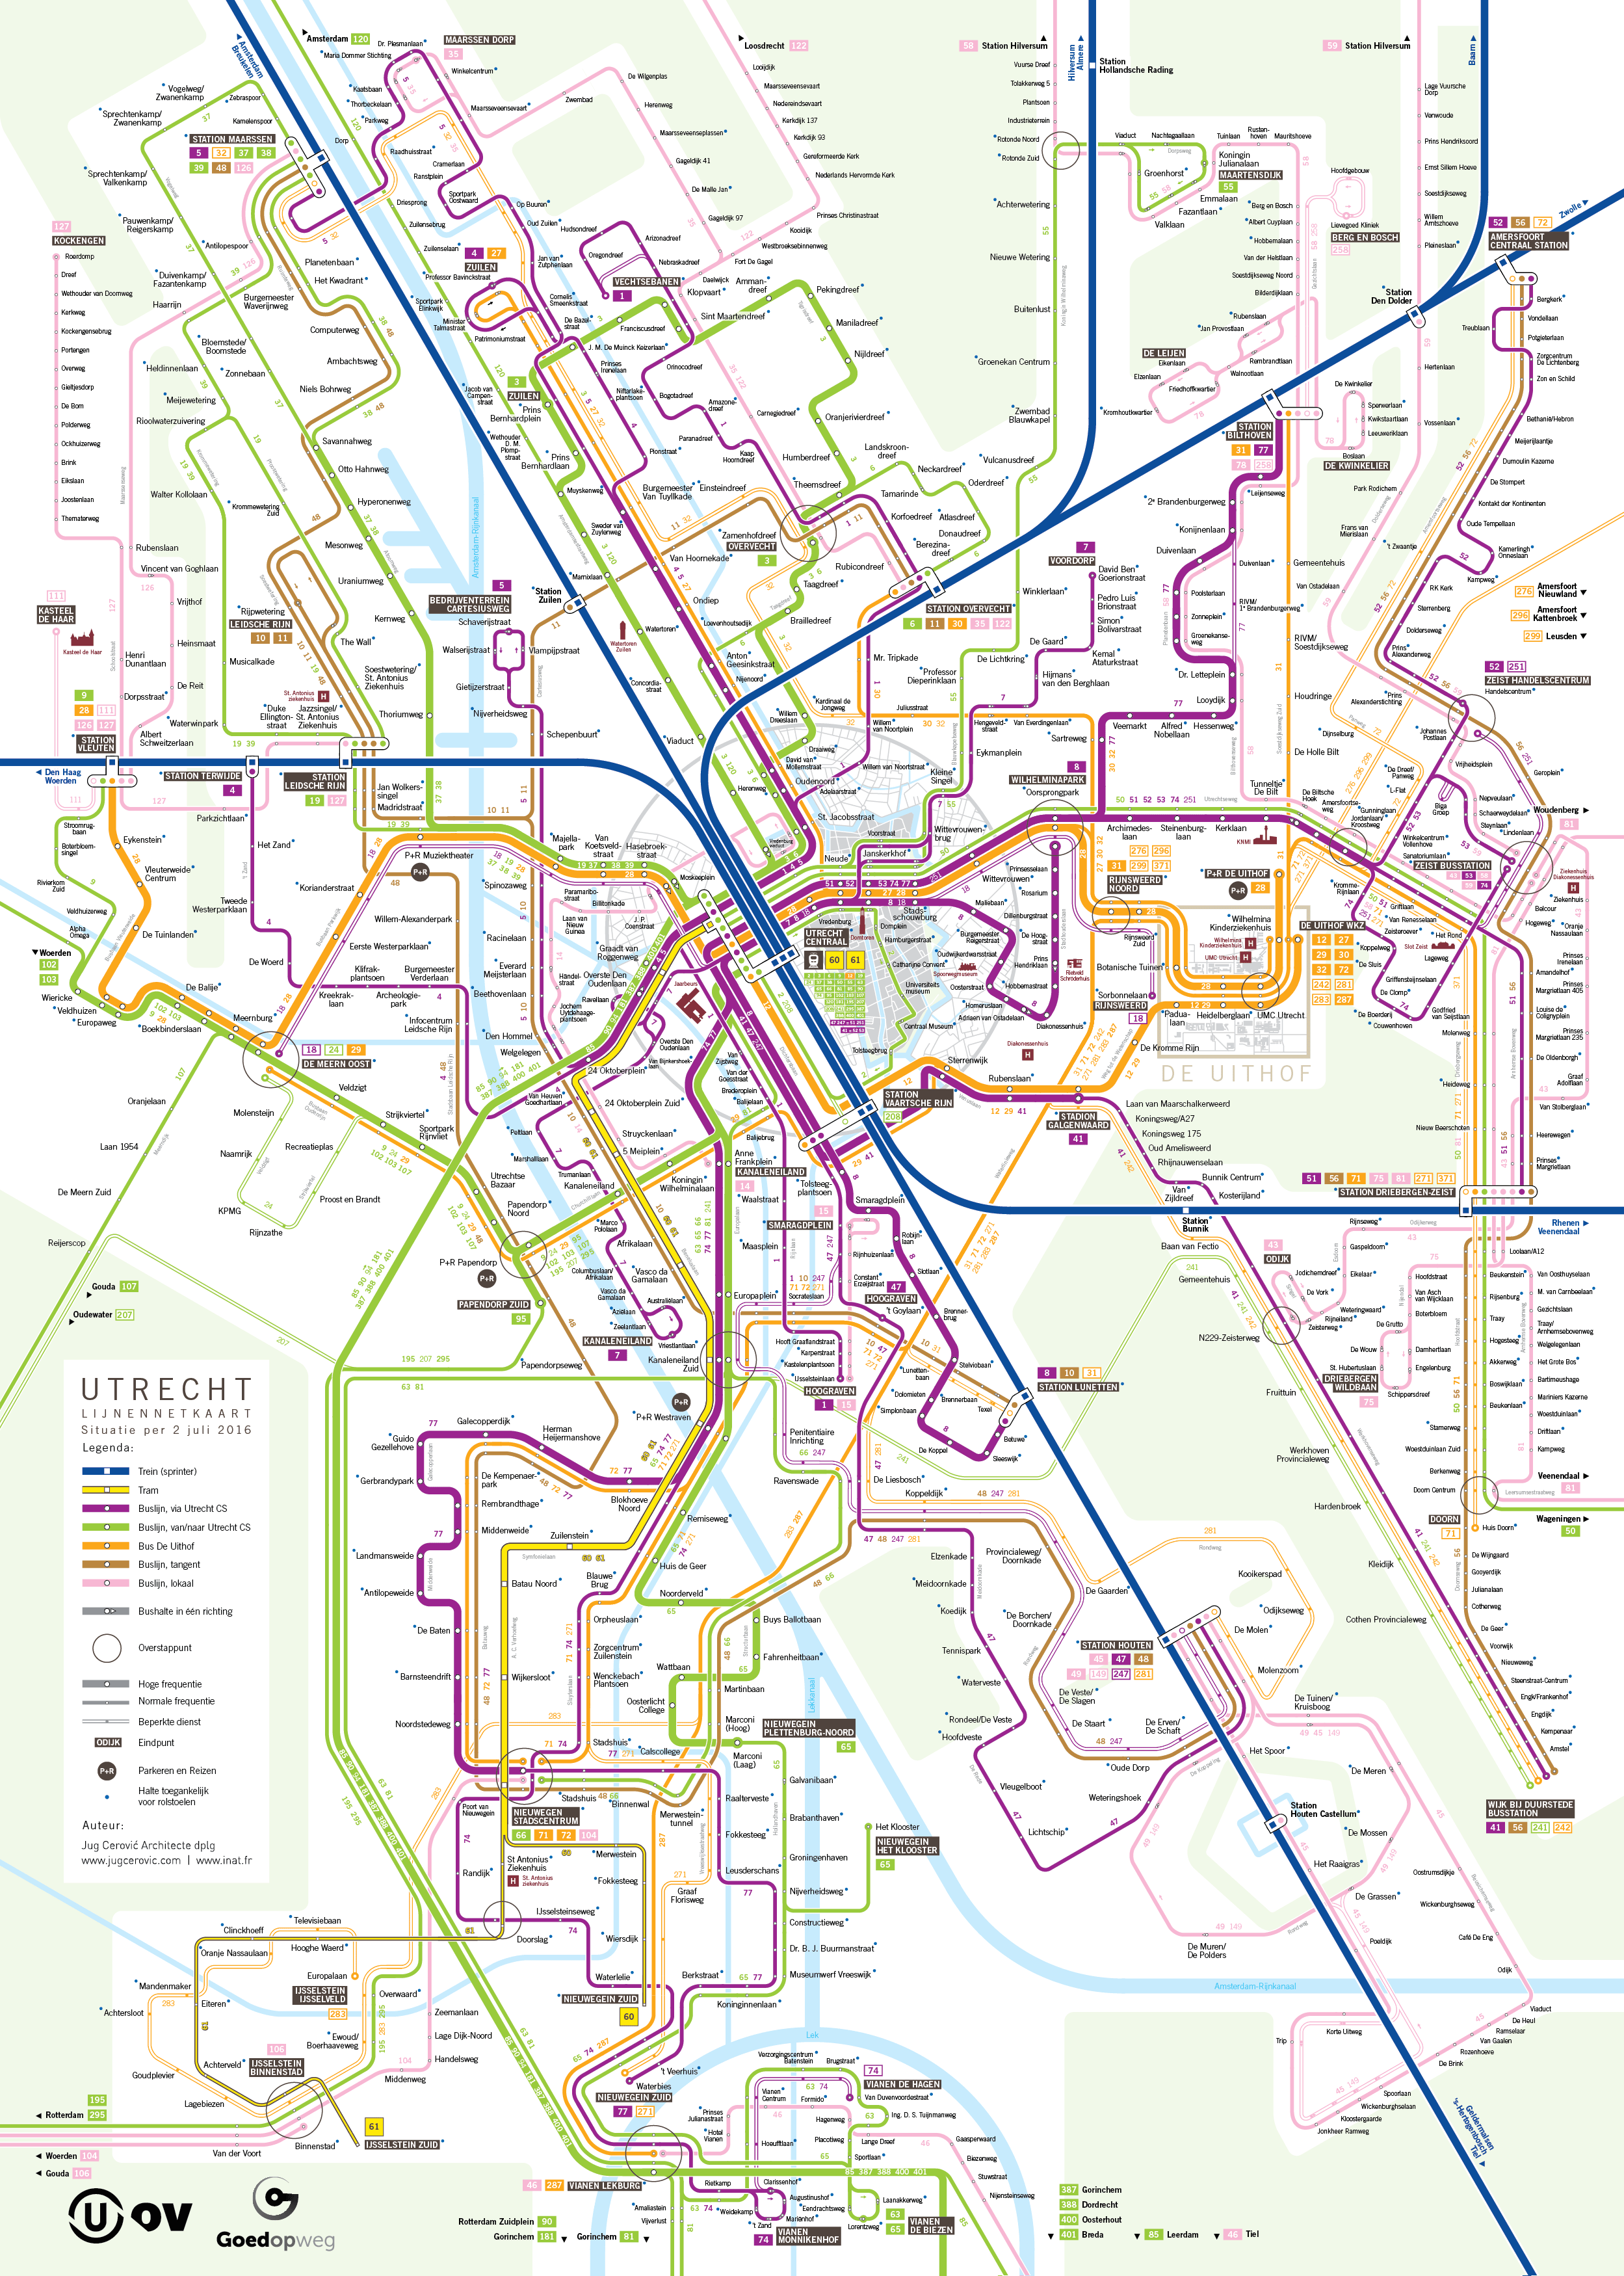 Beijing Subway Map 2017 Legend.Utrecht Lijnennetkaart Bus Tram Train Public Transport Map Transit